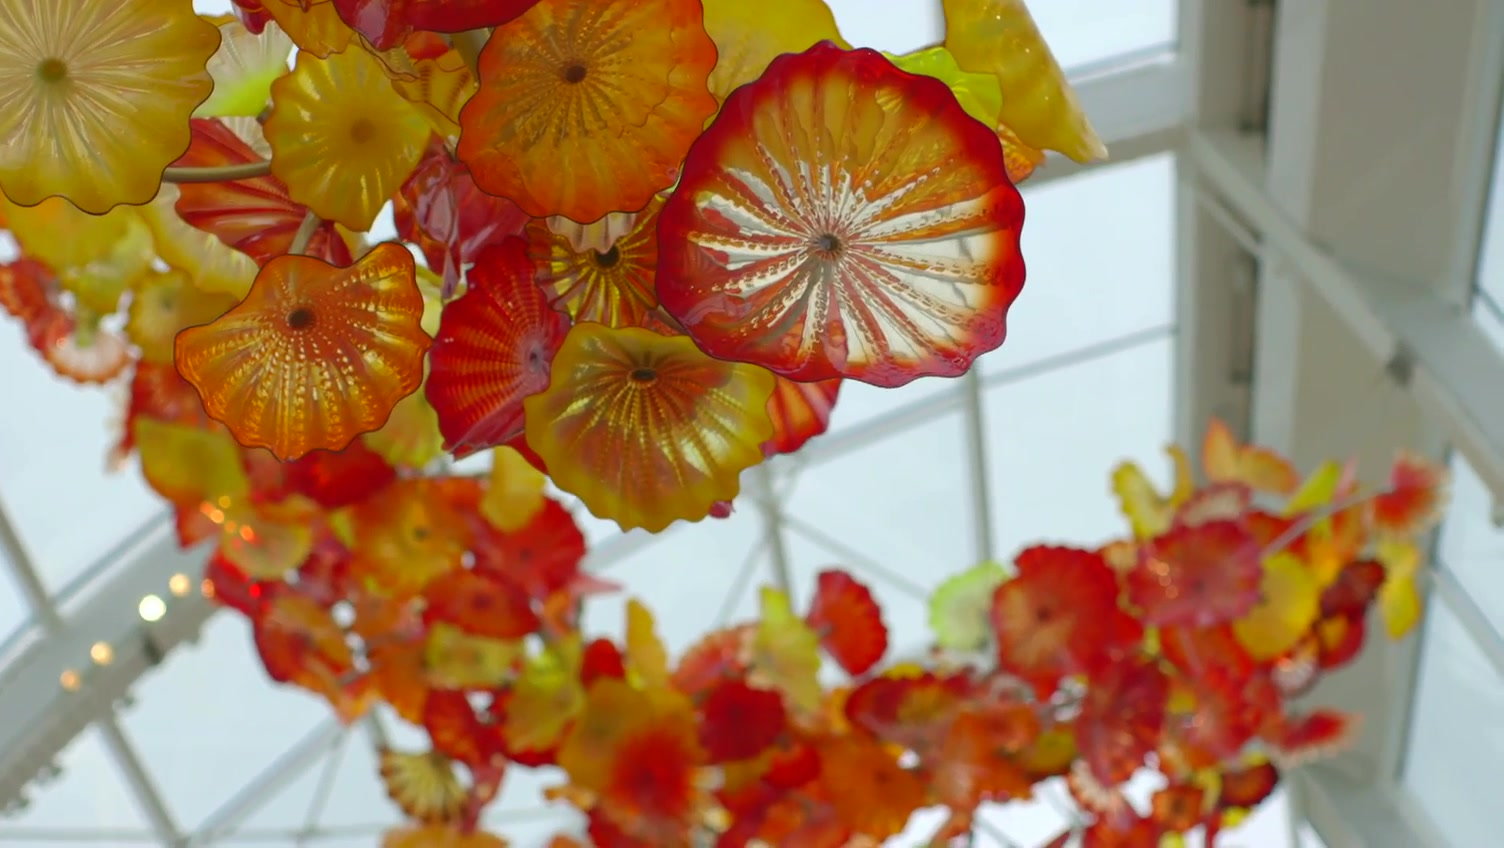 The Future of Aesthetics with Dale Chihuly